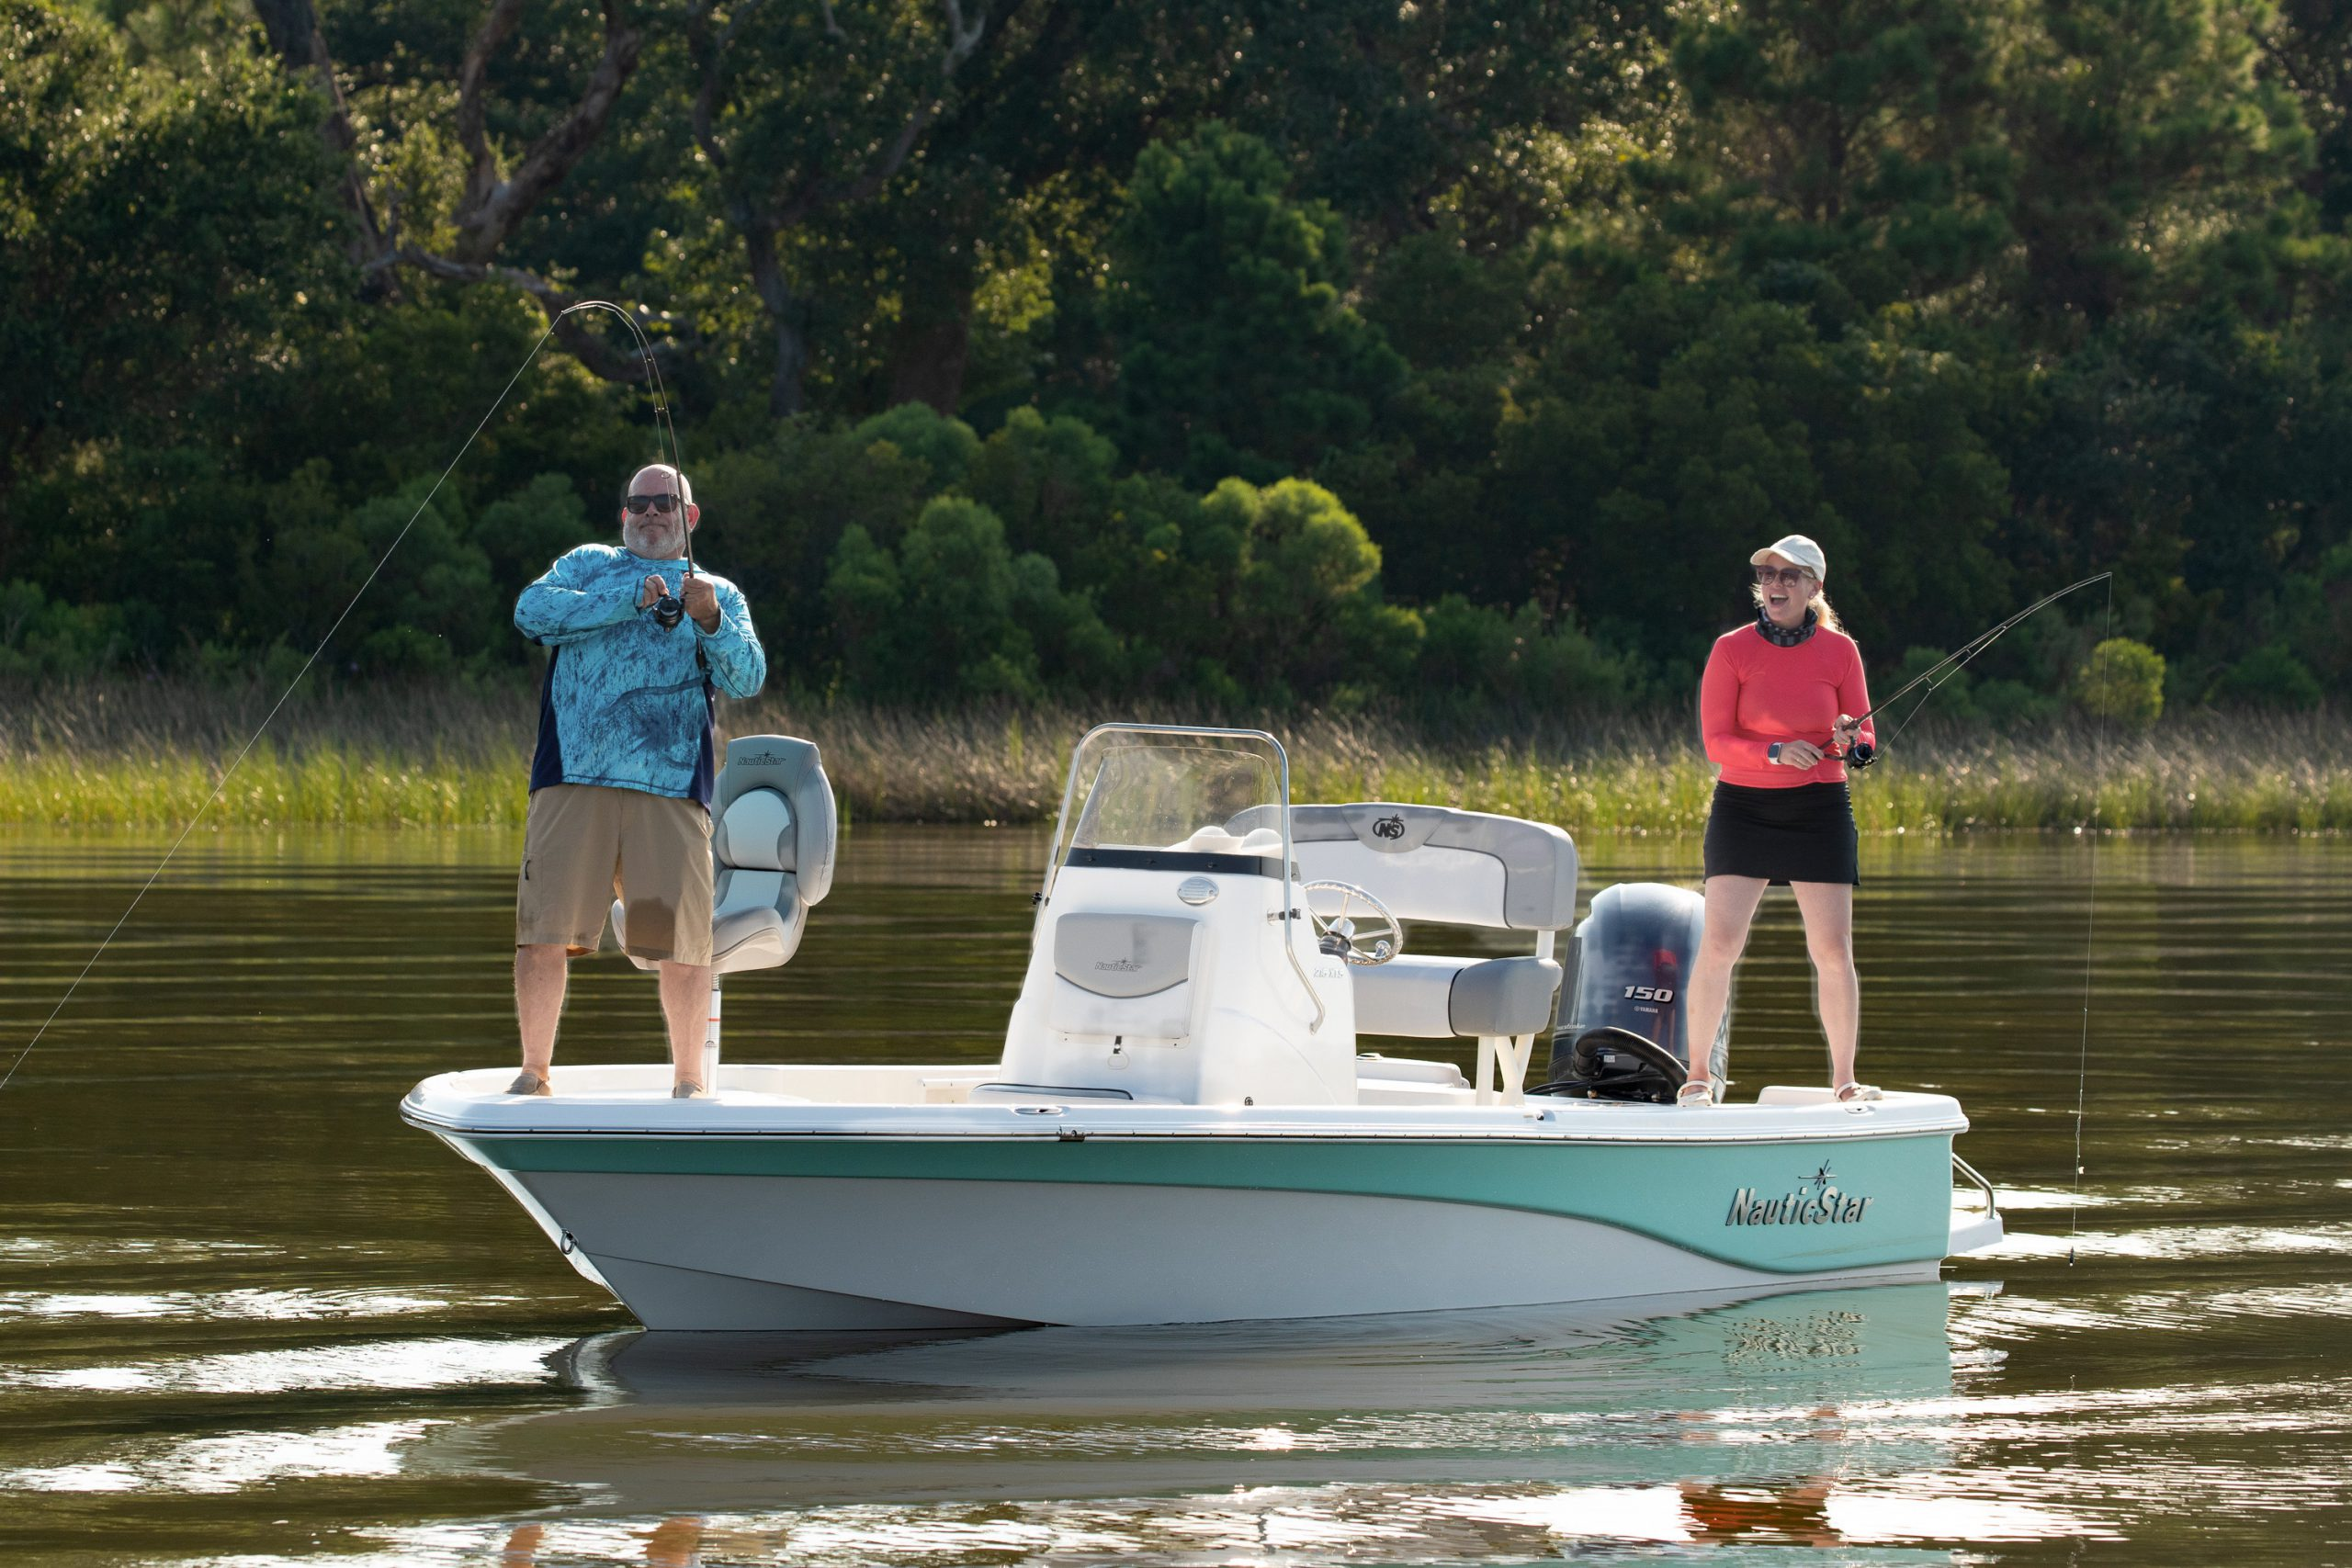 A man reels in a big catch from the casting deck of a NauticStar 215XTS boat while a woman watches from the transom